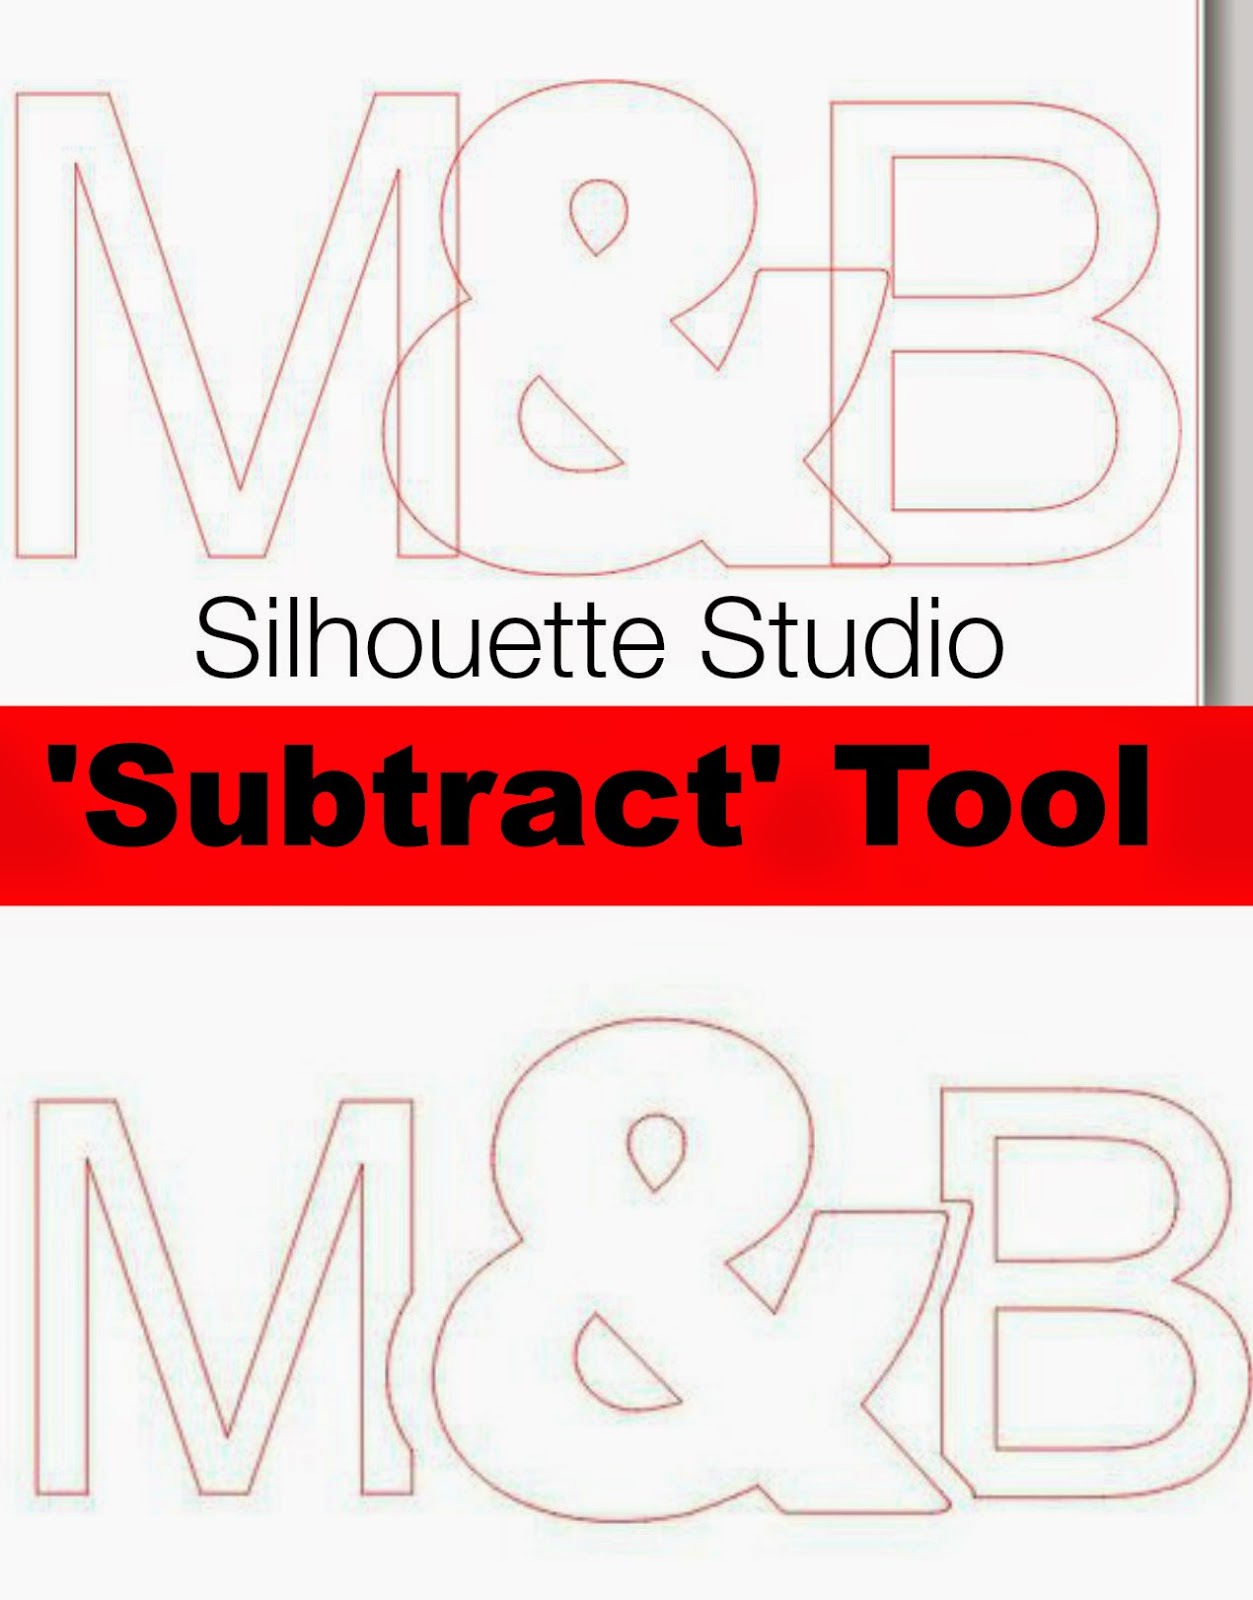 Subtract, subtract all, Silhouette tutorial, Silhouette Studio